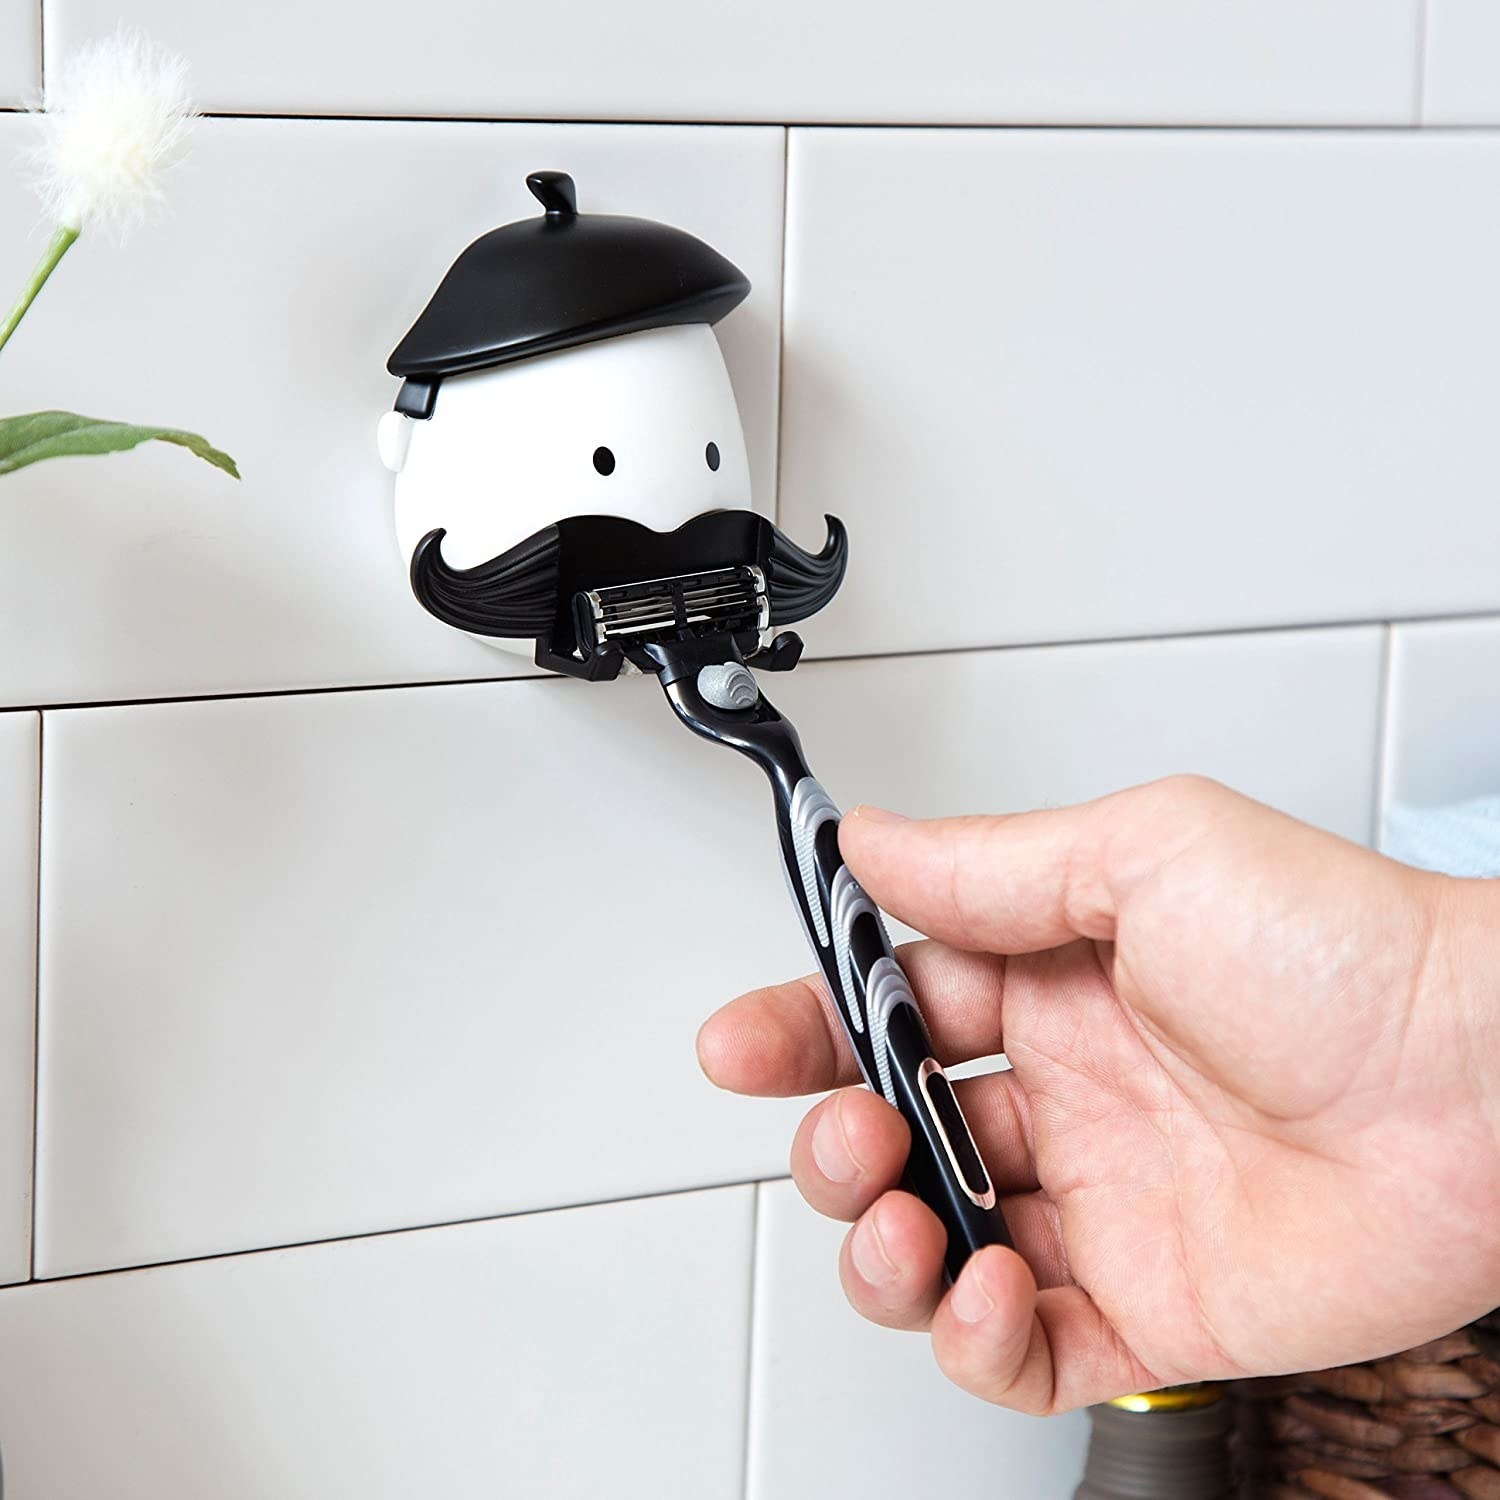 the holder storing a razor in the shower